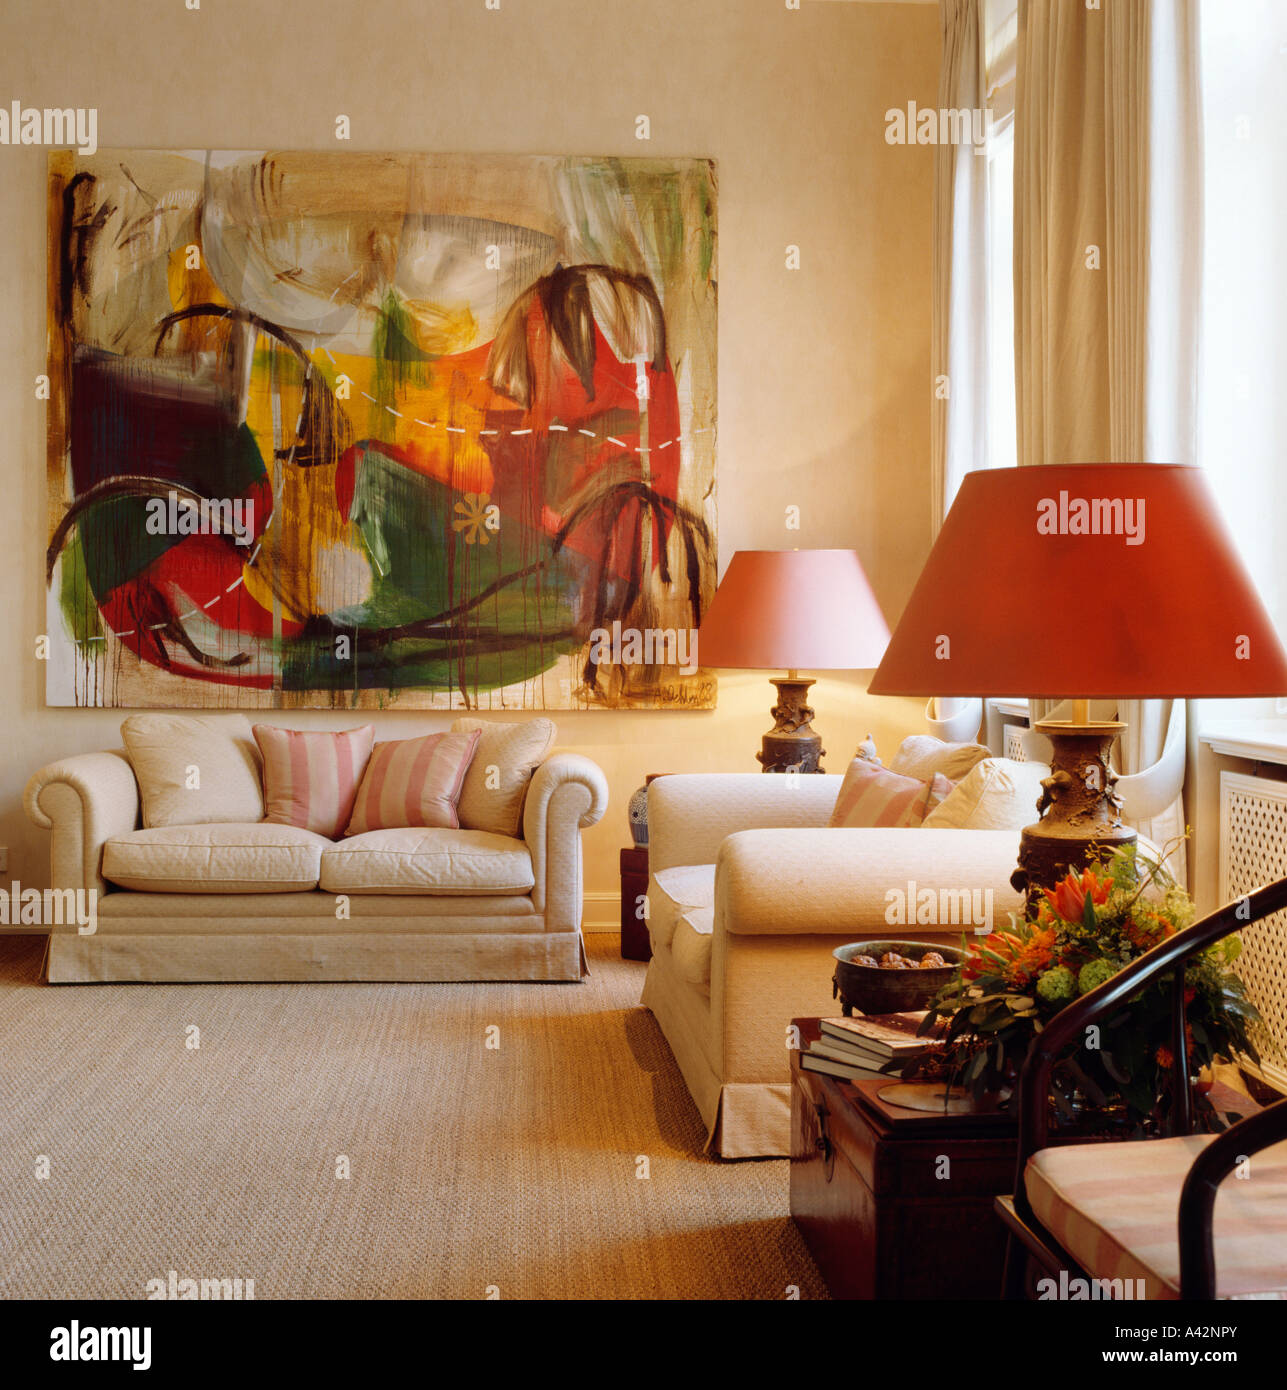 Painting Above Sofa Large Abstract Painting Above Cream Sofa In Upmarket